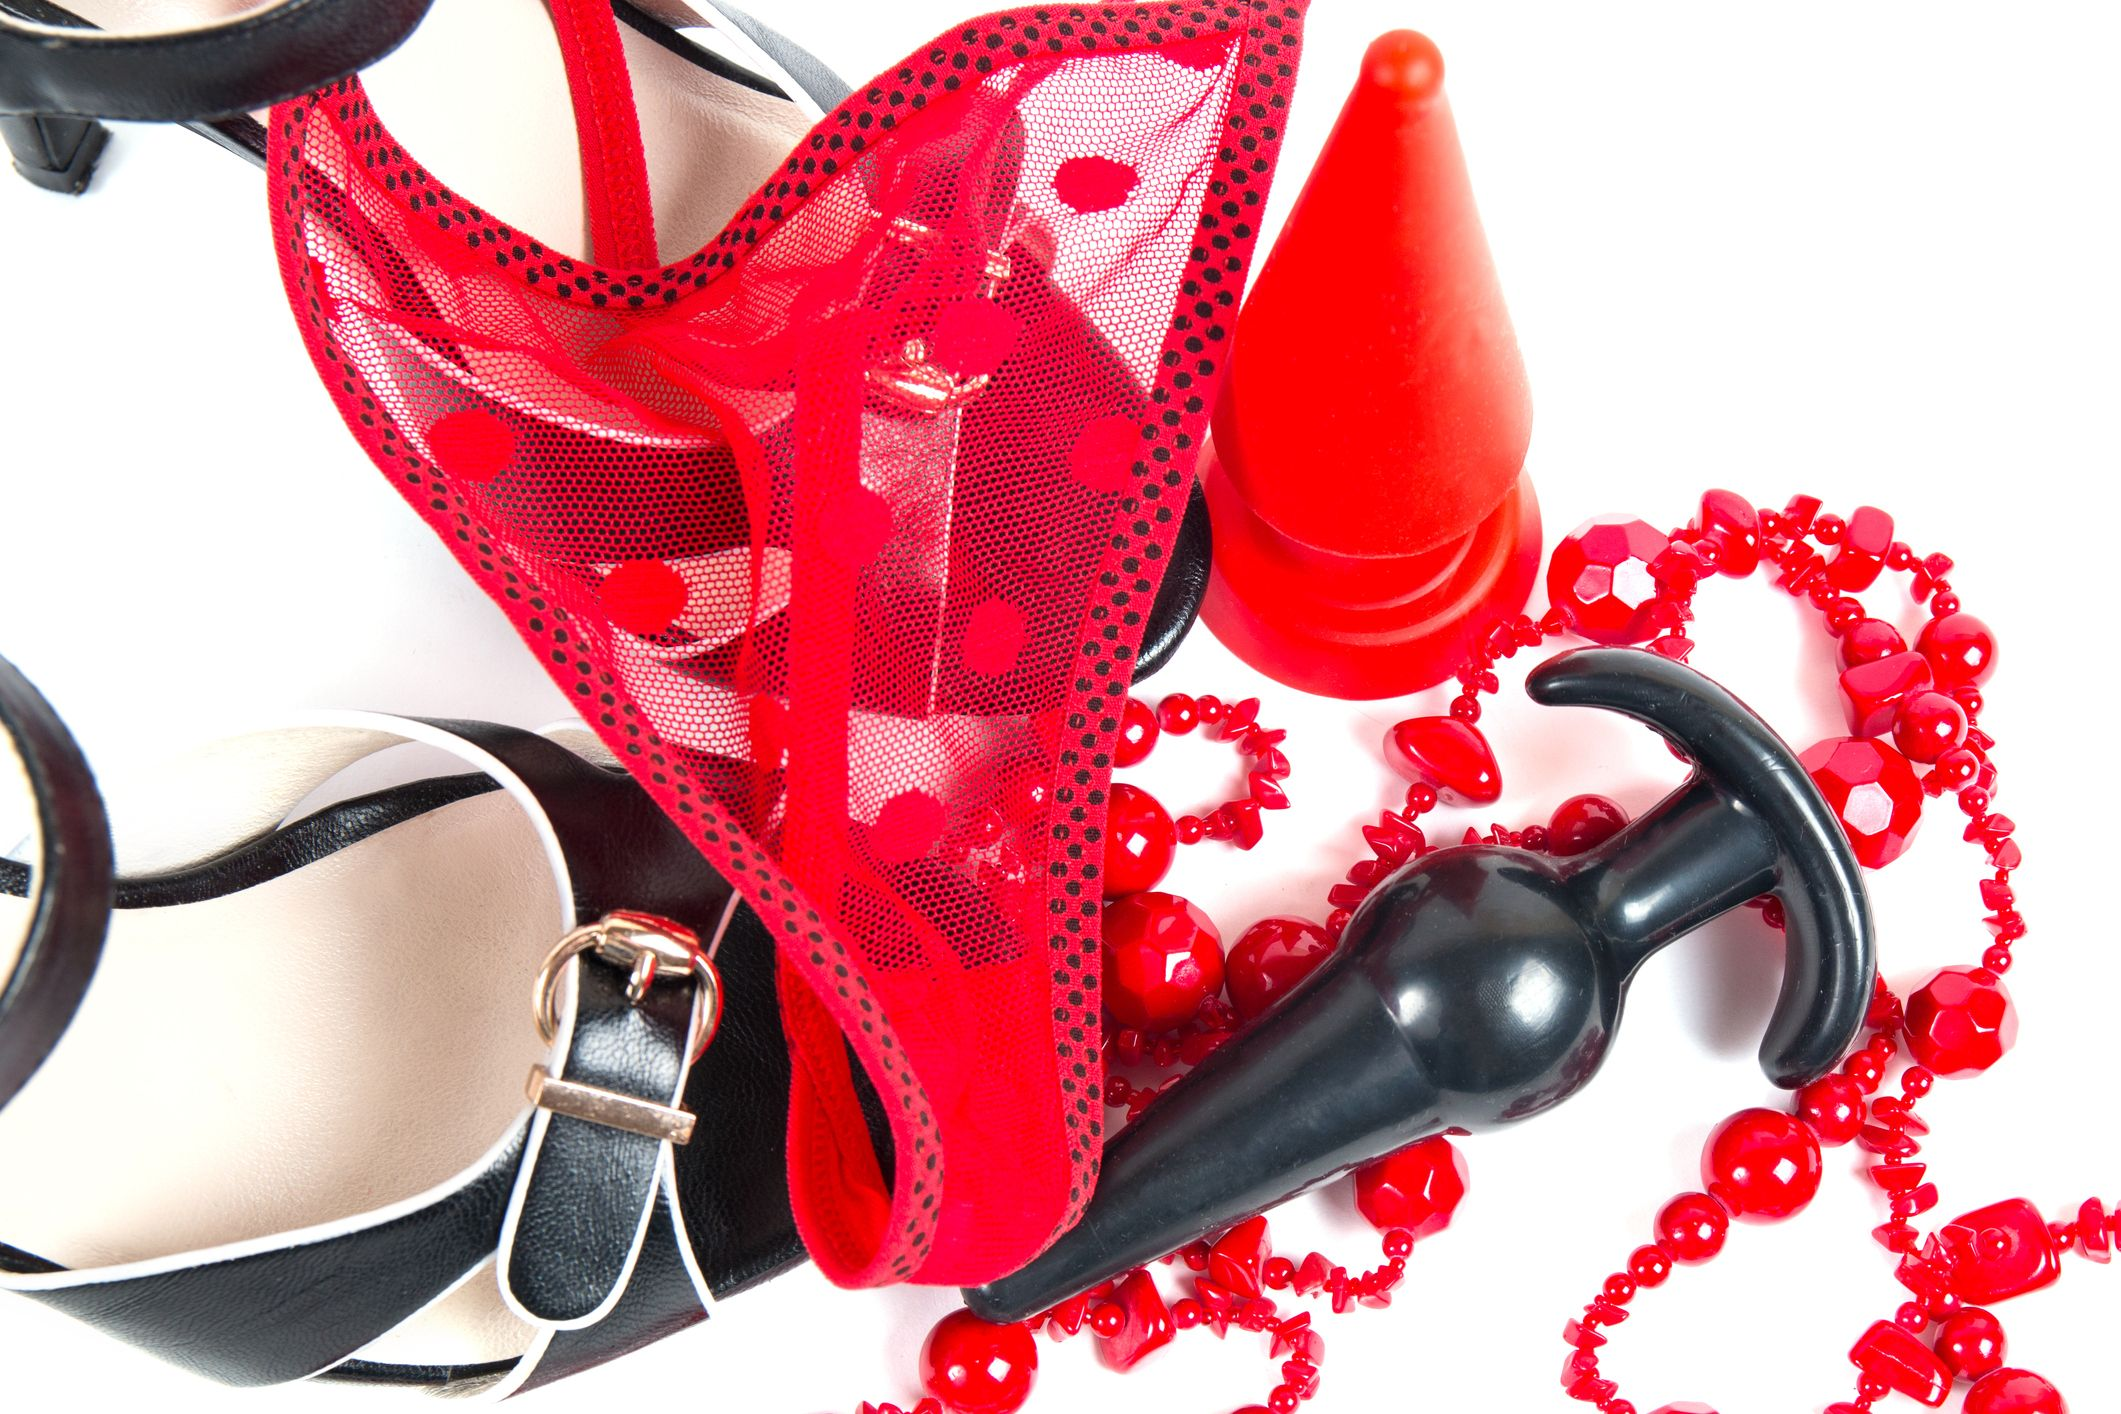 Red, High heels, Font, Mouth, Fashion accessory, Graphic design, Illustration, Graphics, Undergarment,